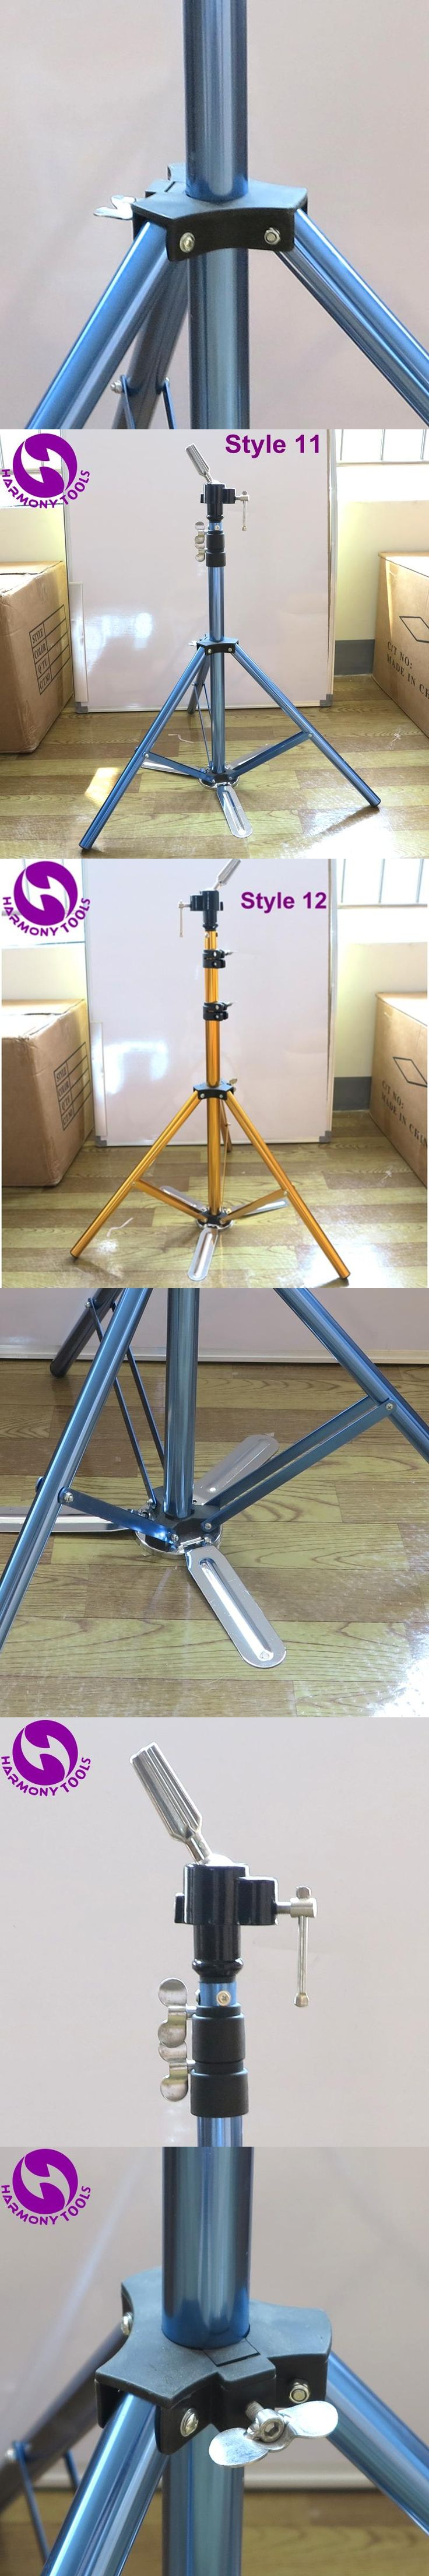 HARMONY 1 Piece Blue Pedal Aluminum Alloy Tripod for Display Hairdressing Training Hair Mannequin Head Holder Clamp